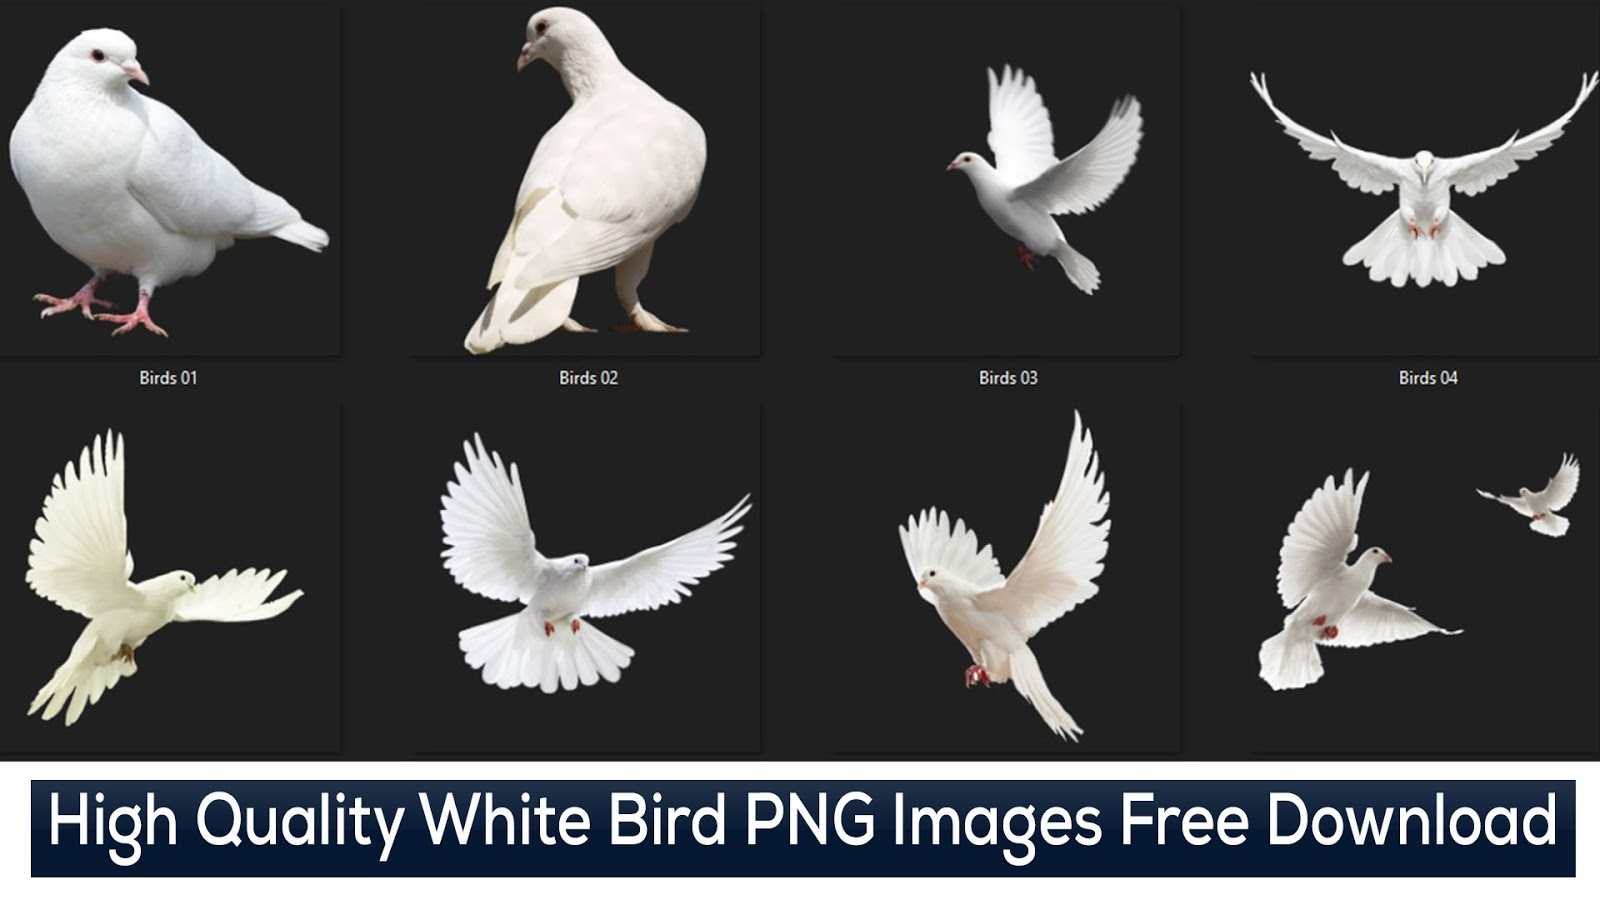 White Bird PNG Images - Birds PNG Images Free Download